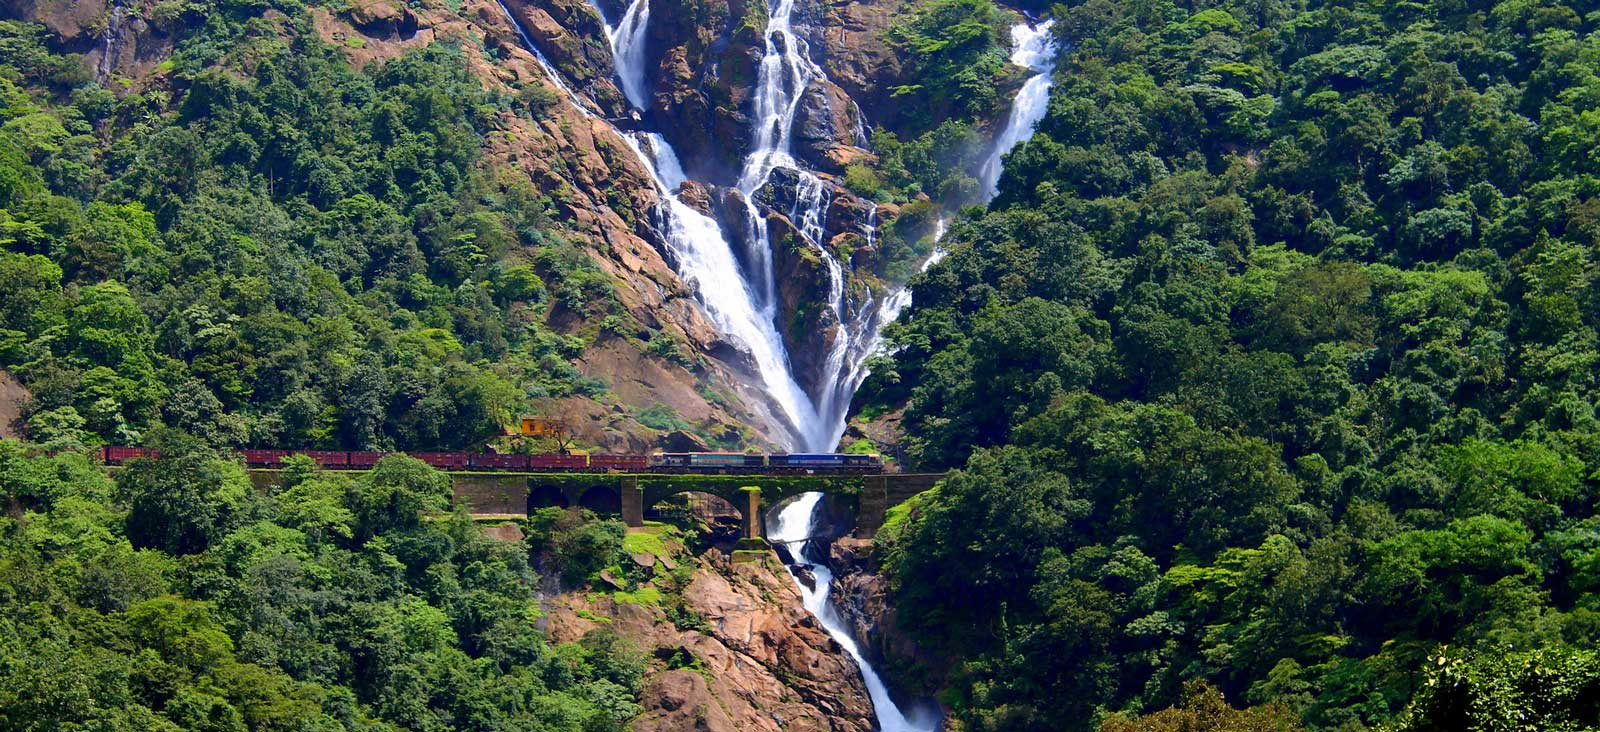 Photo: dudhsagar-waterfall, Goa (India)